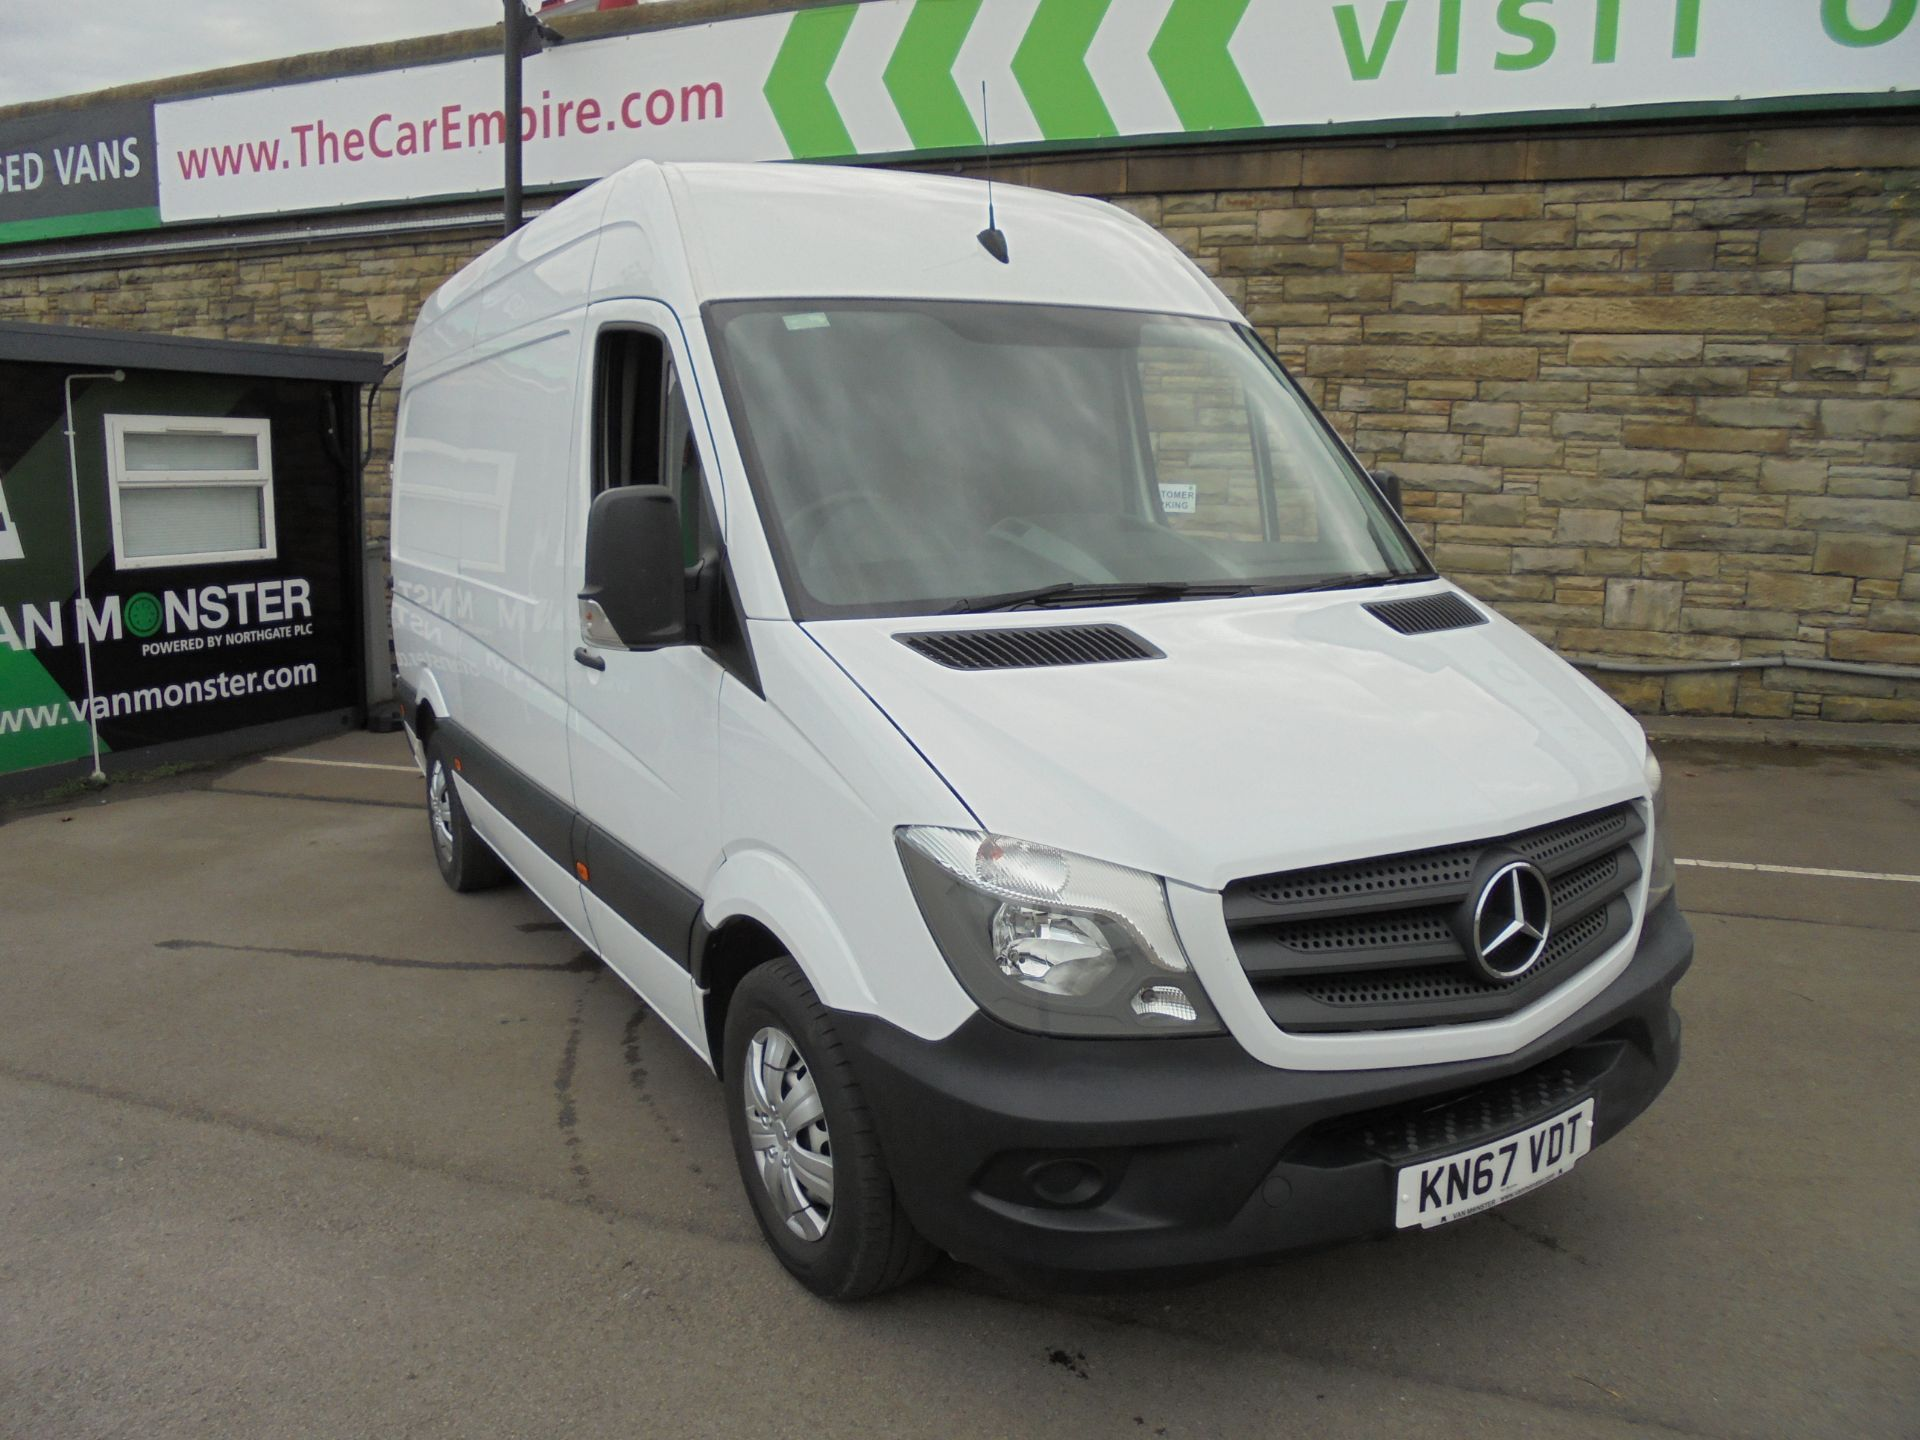 2017 Mercedes-Benz Sprinter 3.5T High Roof Van MWB (KN67VDT)